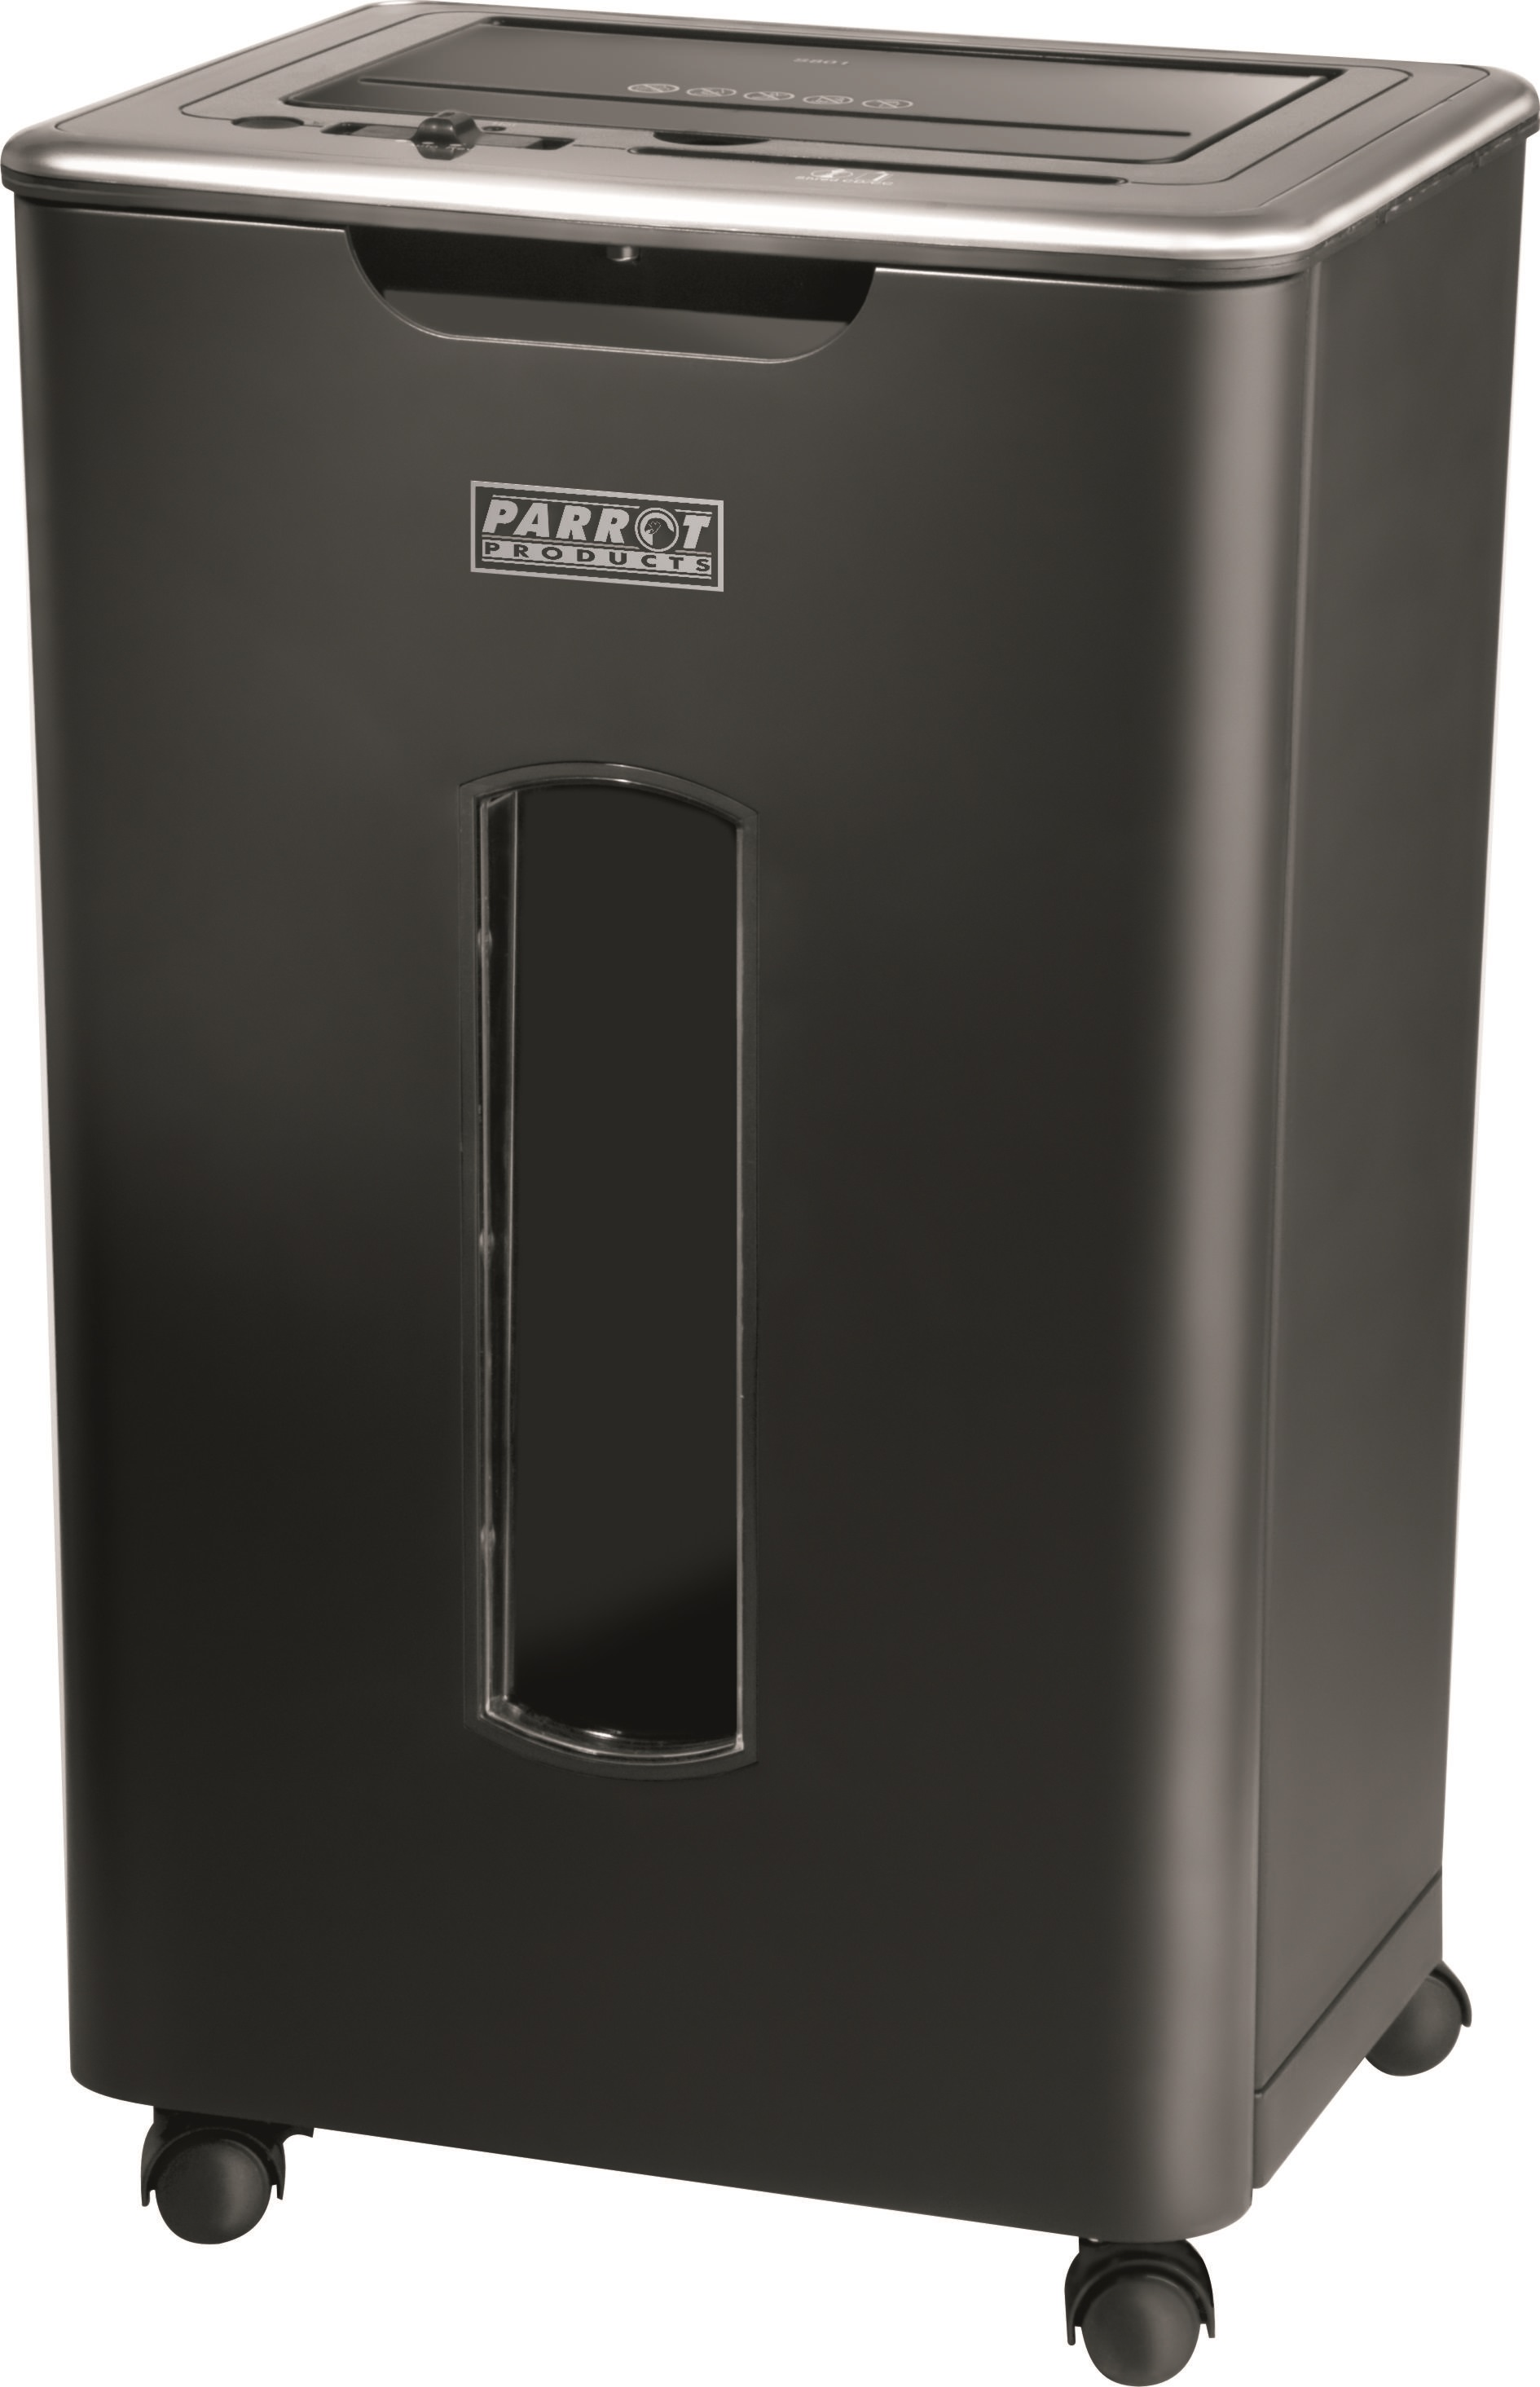 Parrot S801 Paper Shredder